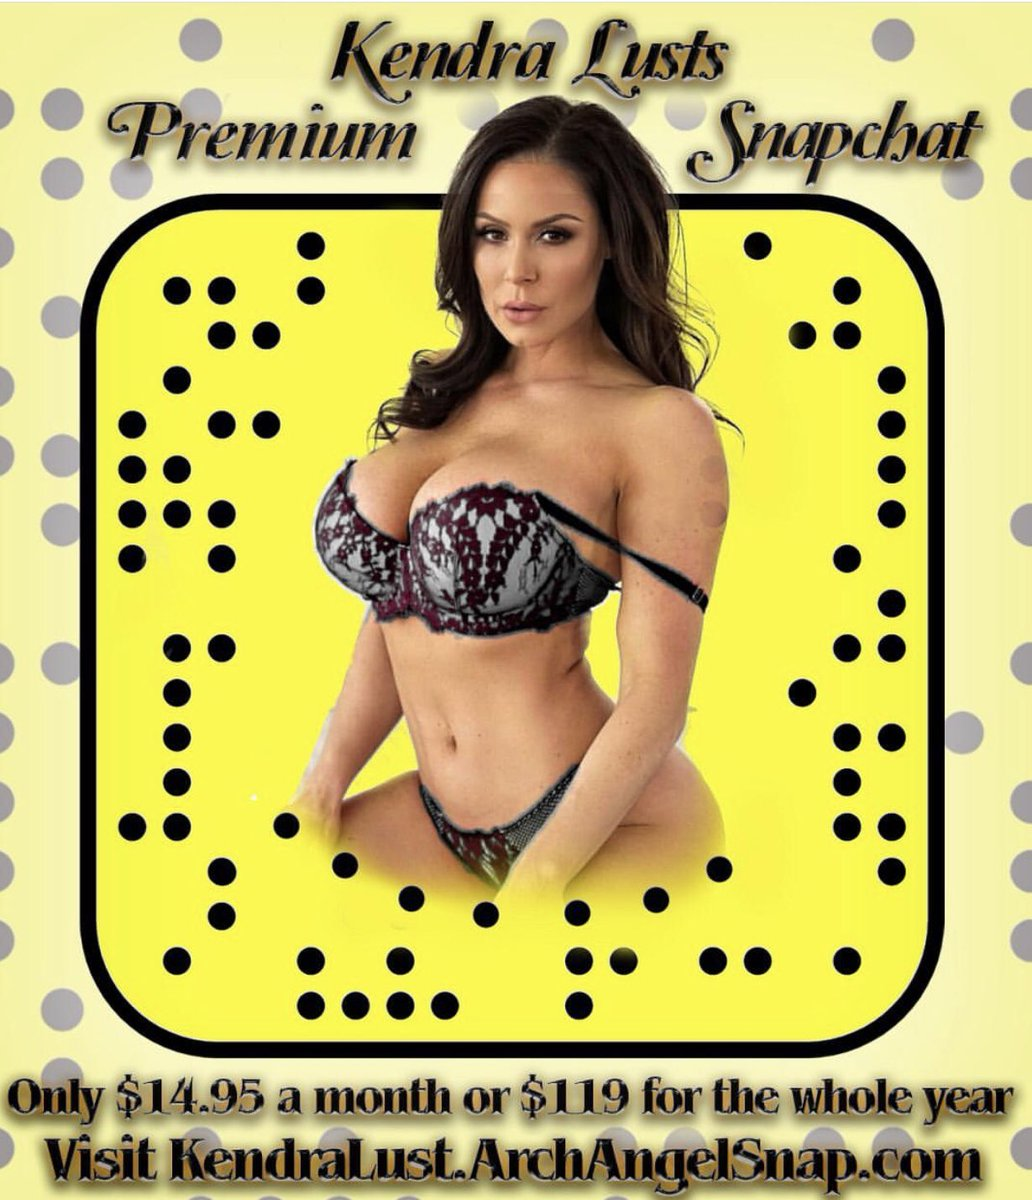 Get my snap chat now!! #LustArmy yuiVzaQI59